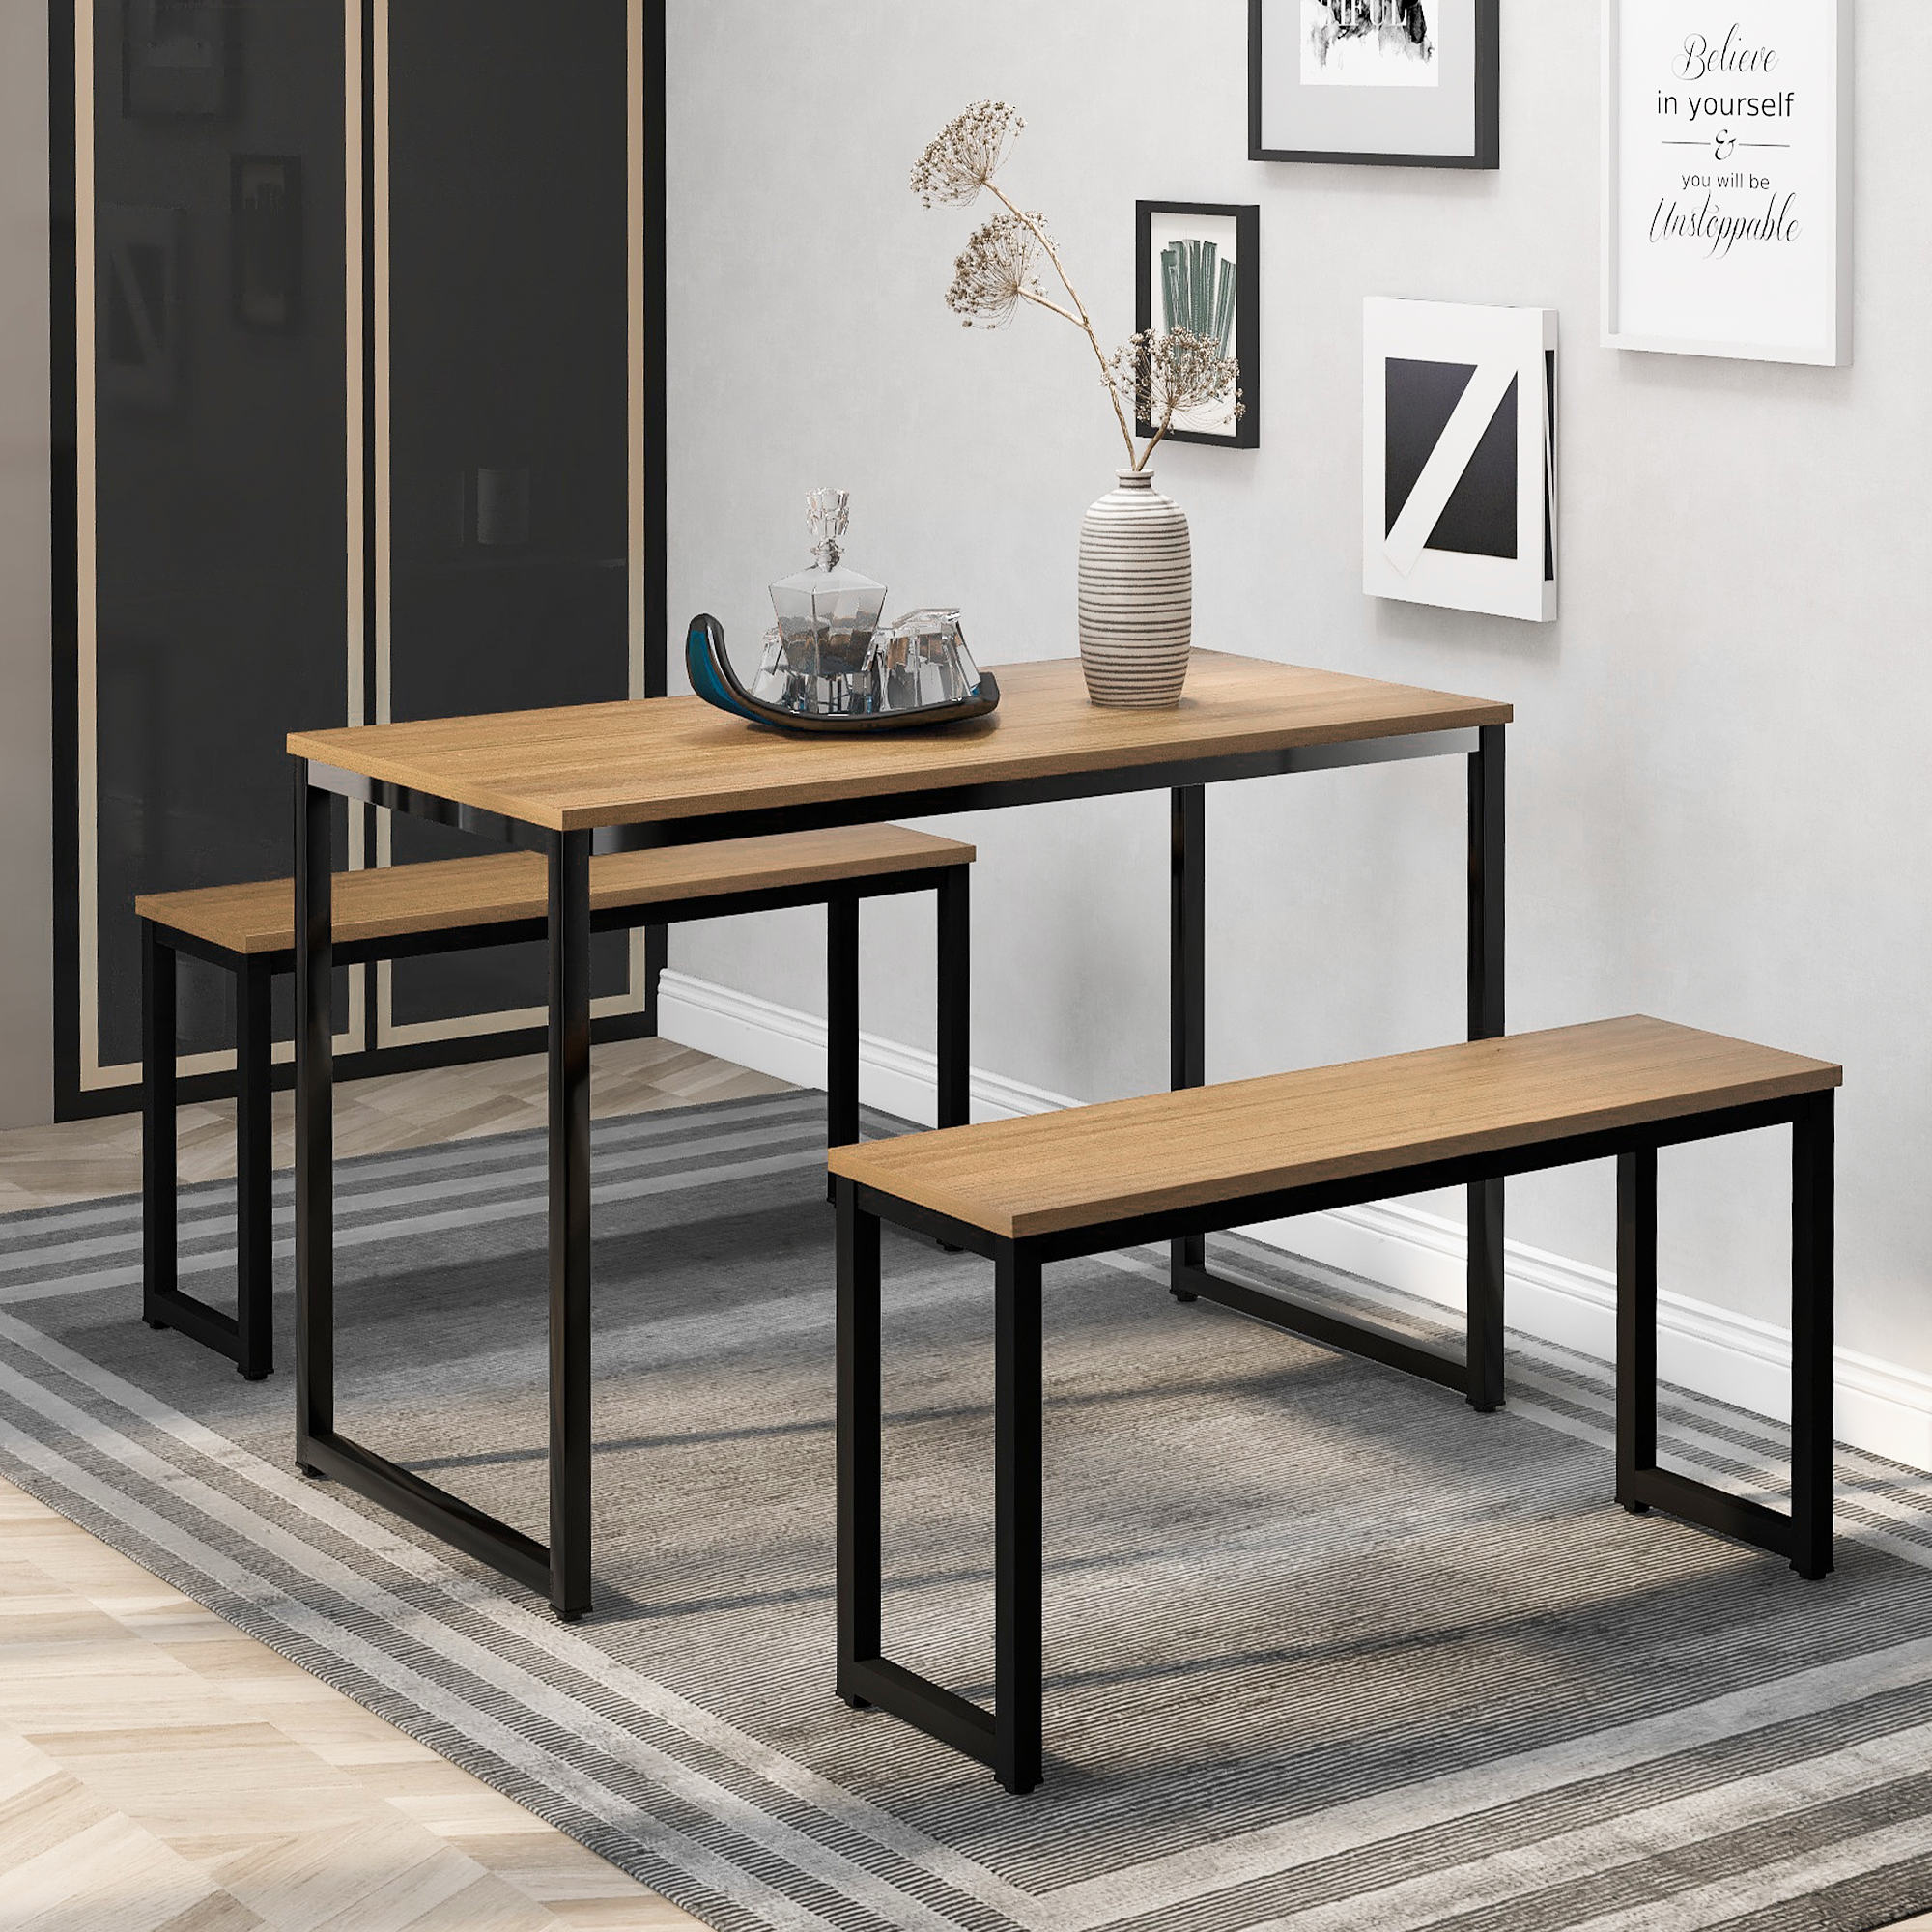 Modern Dining Table With Bench Compact Dining Set Use For Small ...